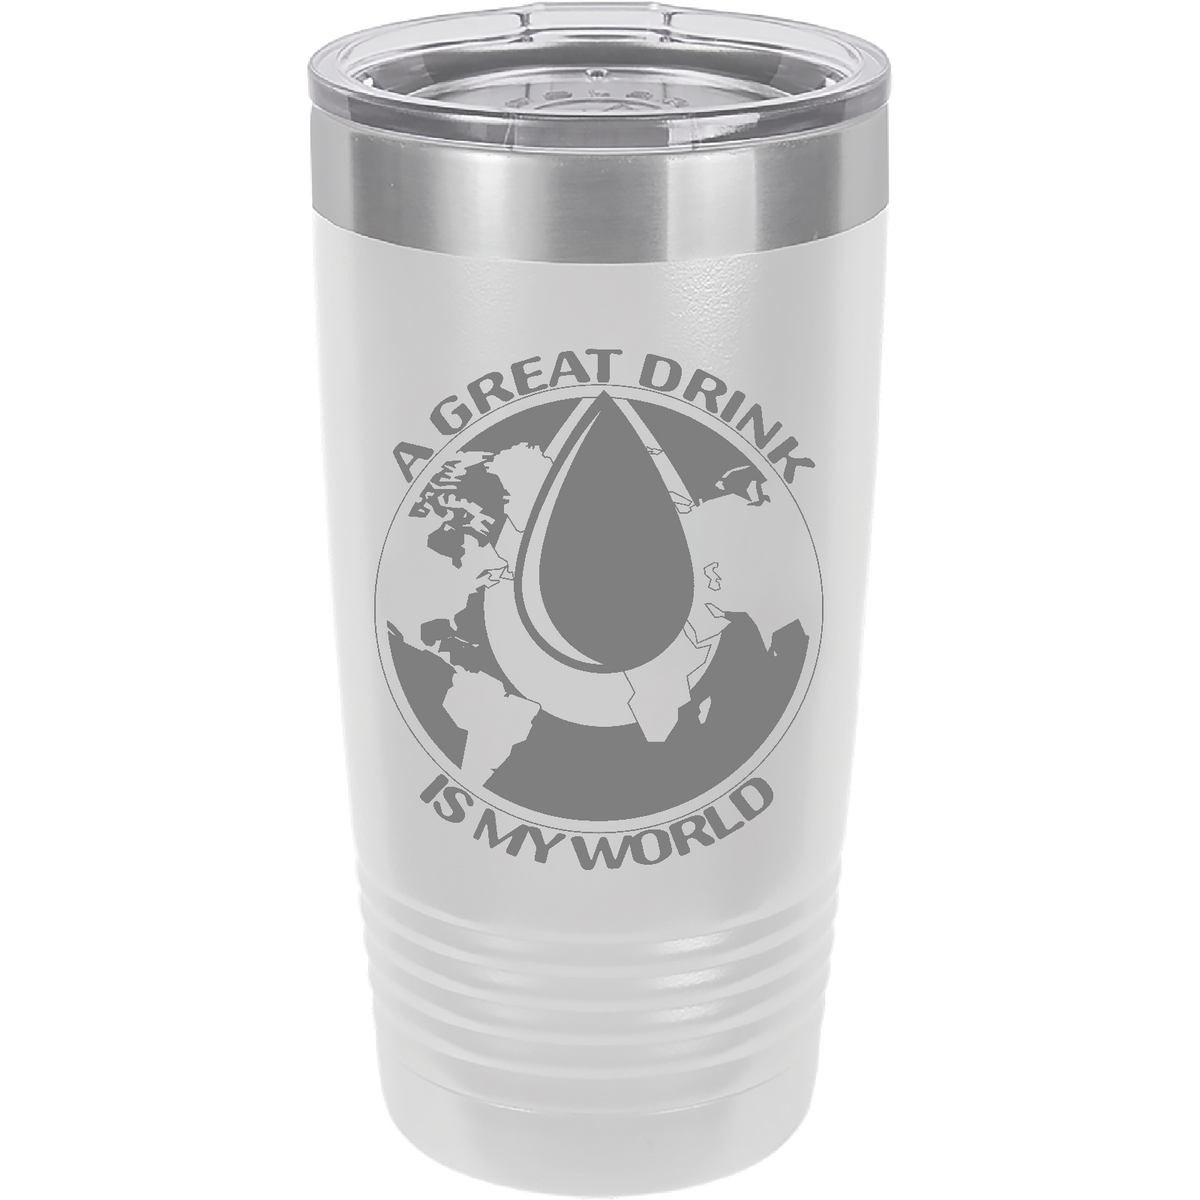 A great drink is my world, what's yours - 20oz. Engraved Tumbler with Clear Lid